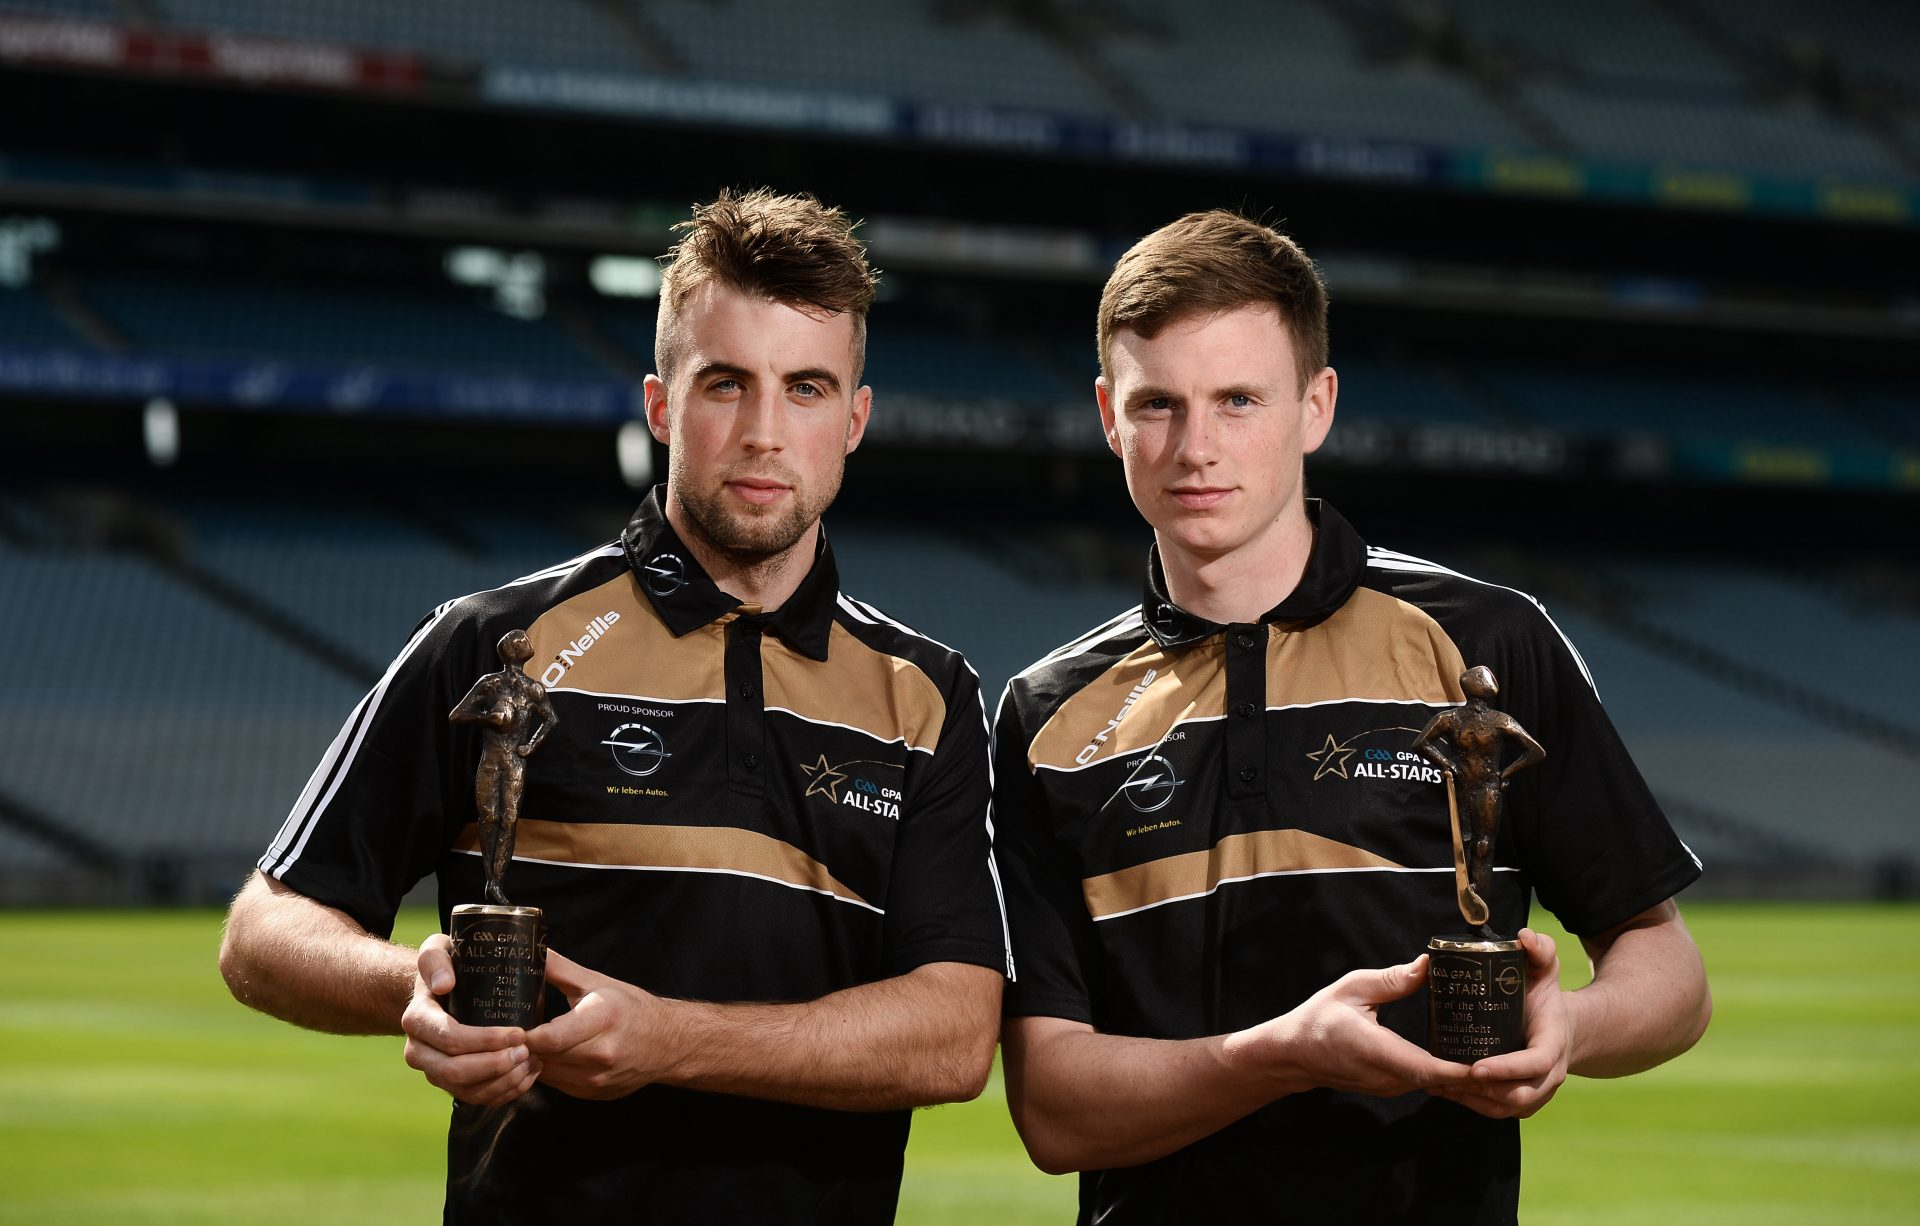 Opel GAA/GPA Players of the Month